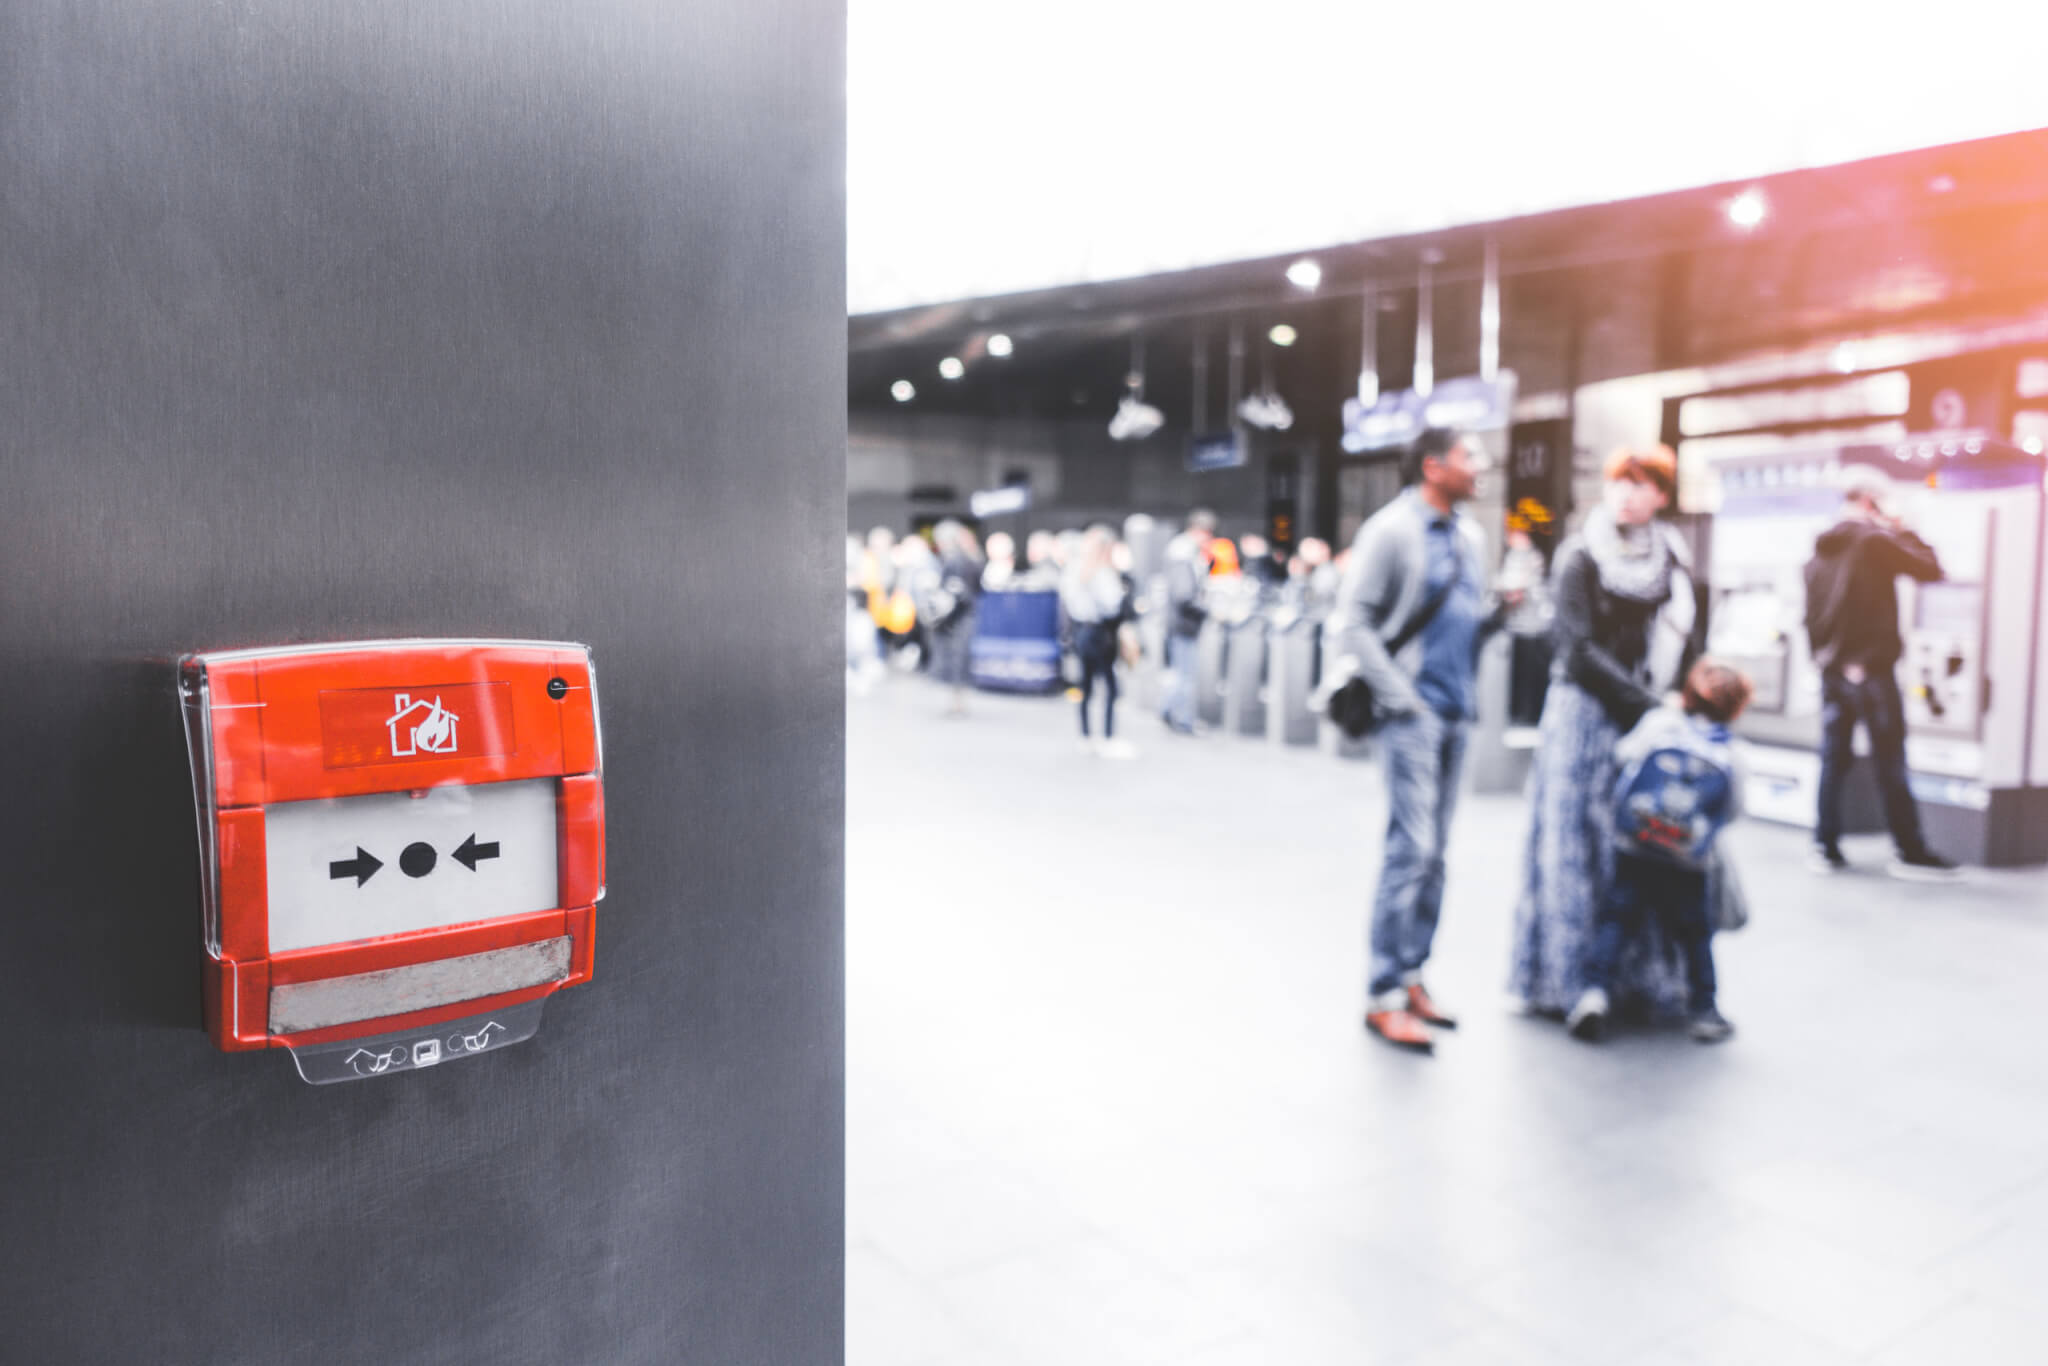 London, England-19 October,2018: Fire alarm for emergency on the wall in train station, subway or underground at London train station, England. Public fire alarm for safety concept.